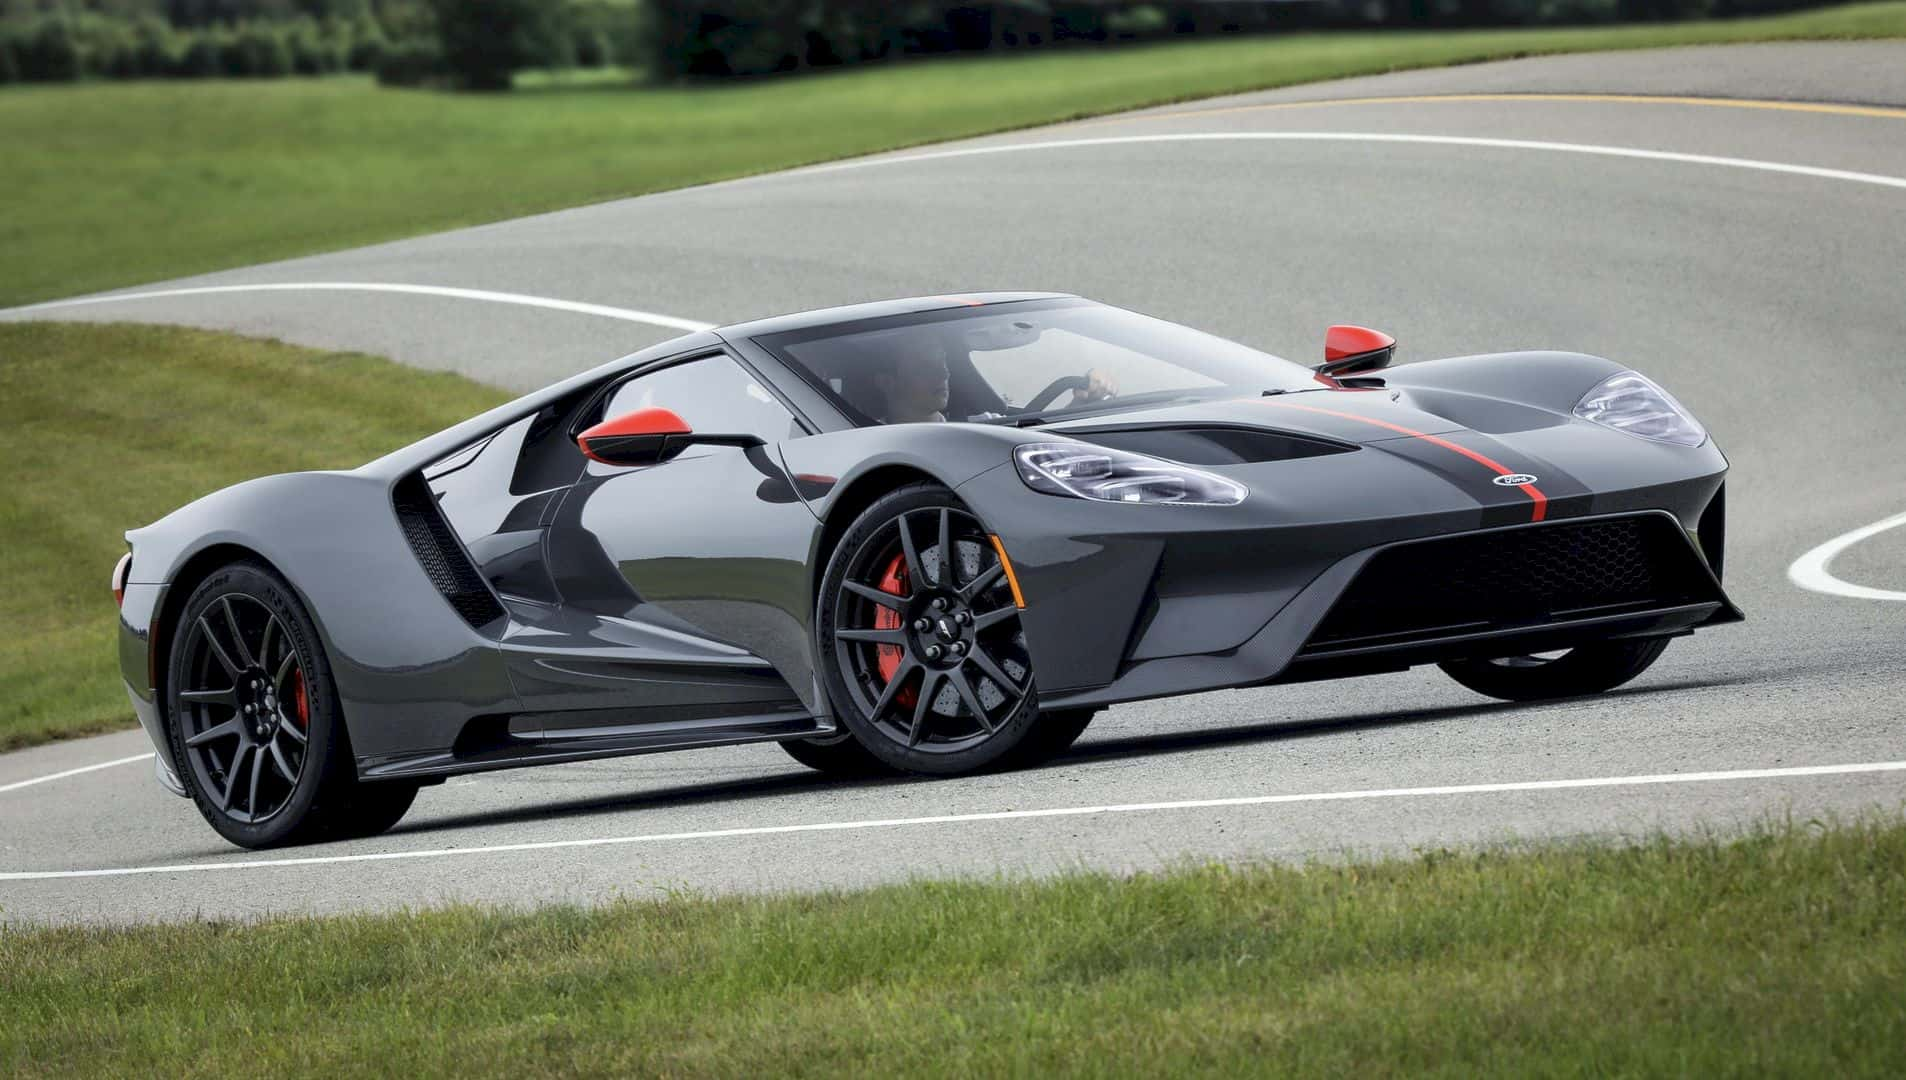 2019 Ford Gt Carbon Series 2